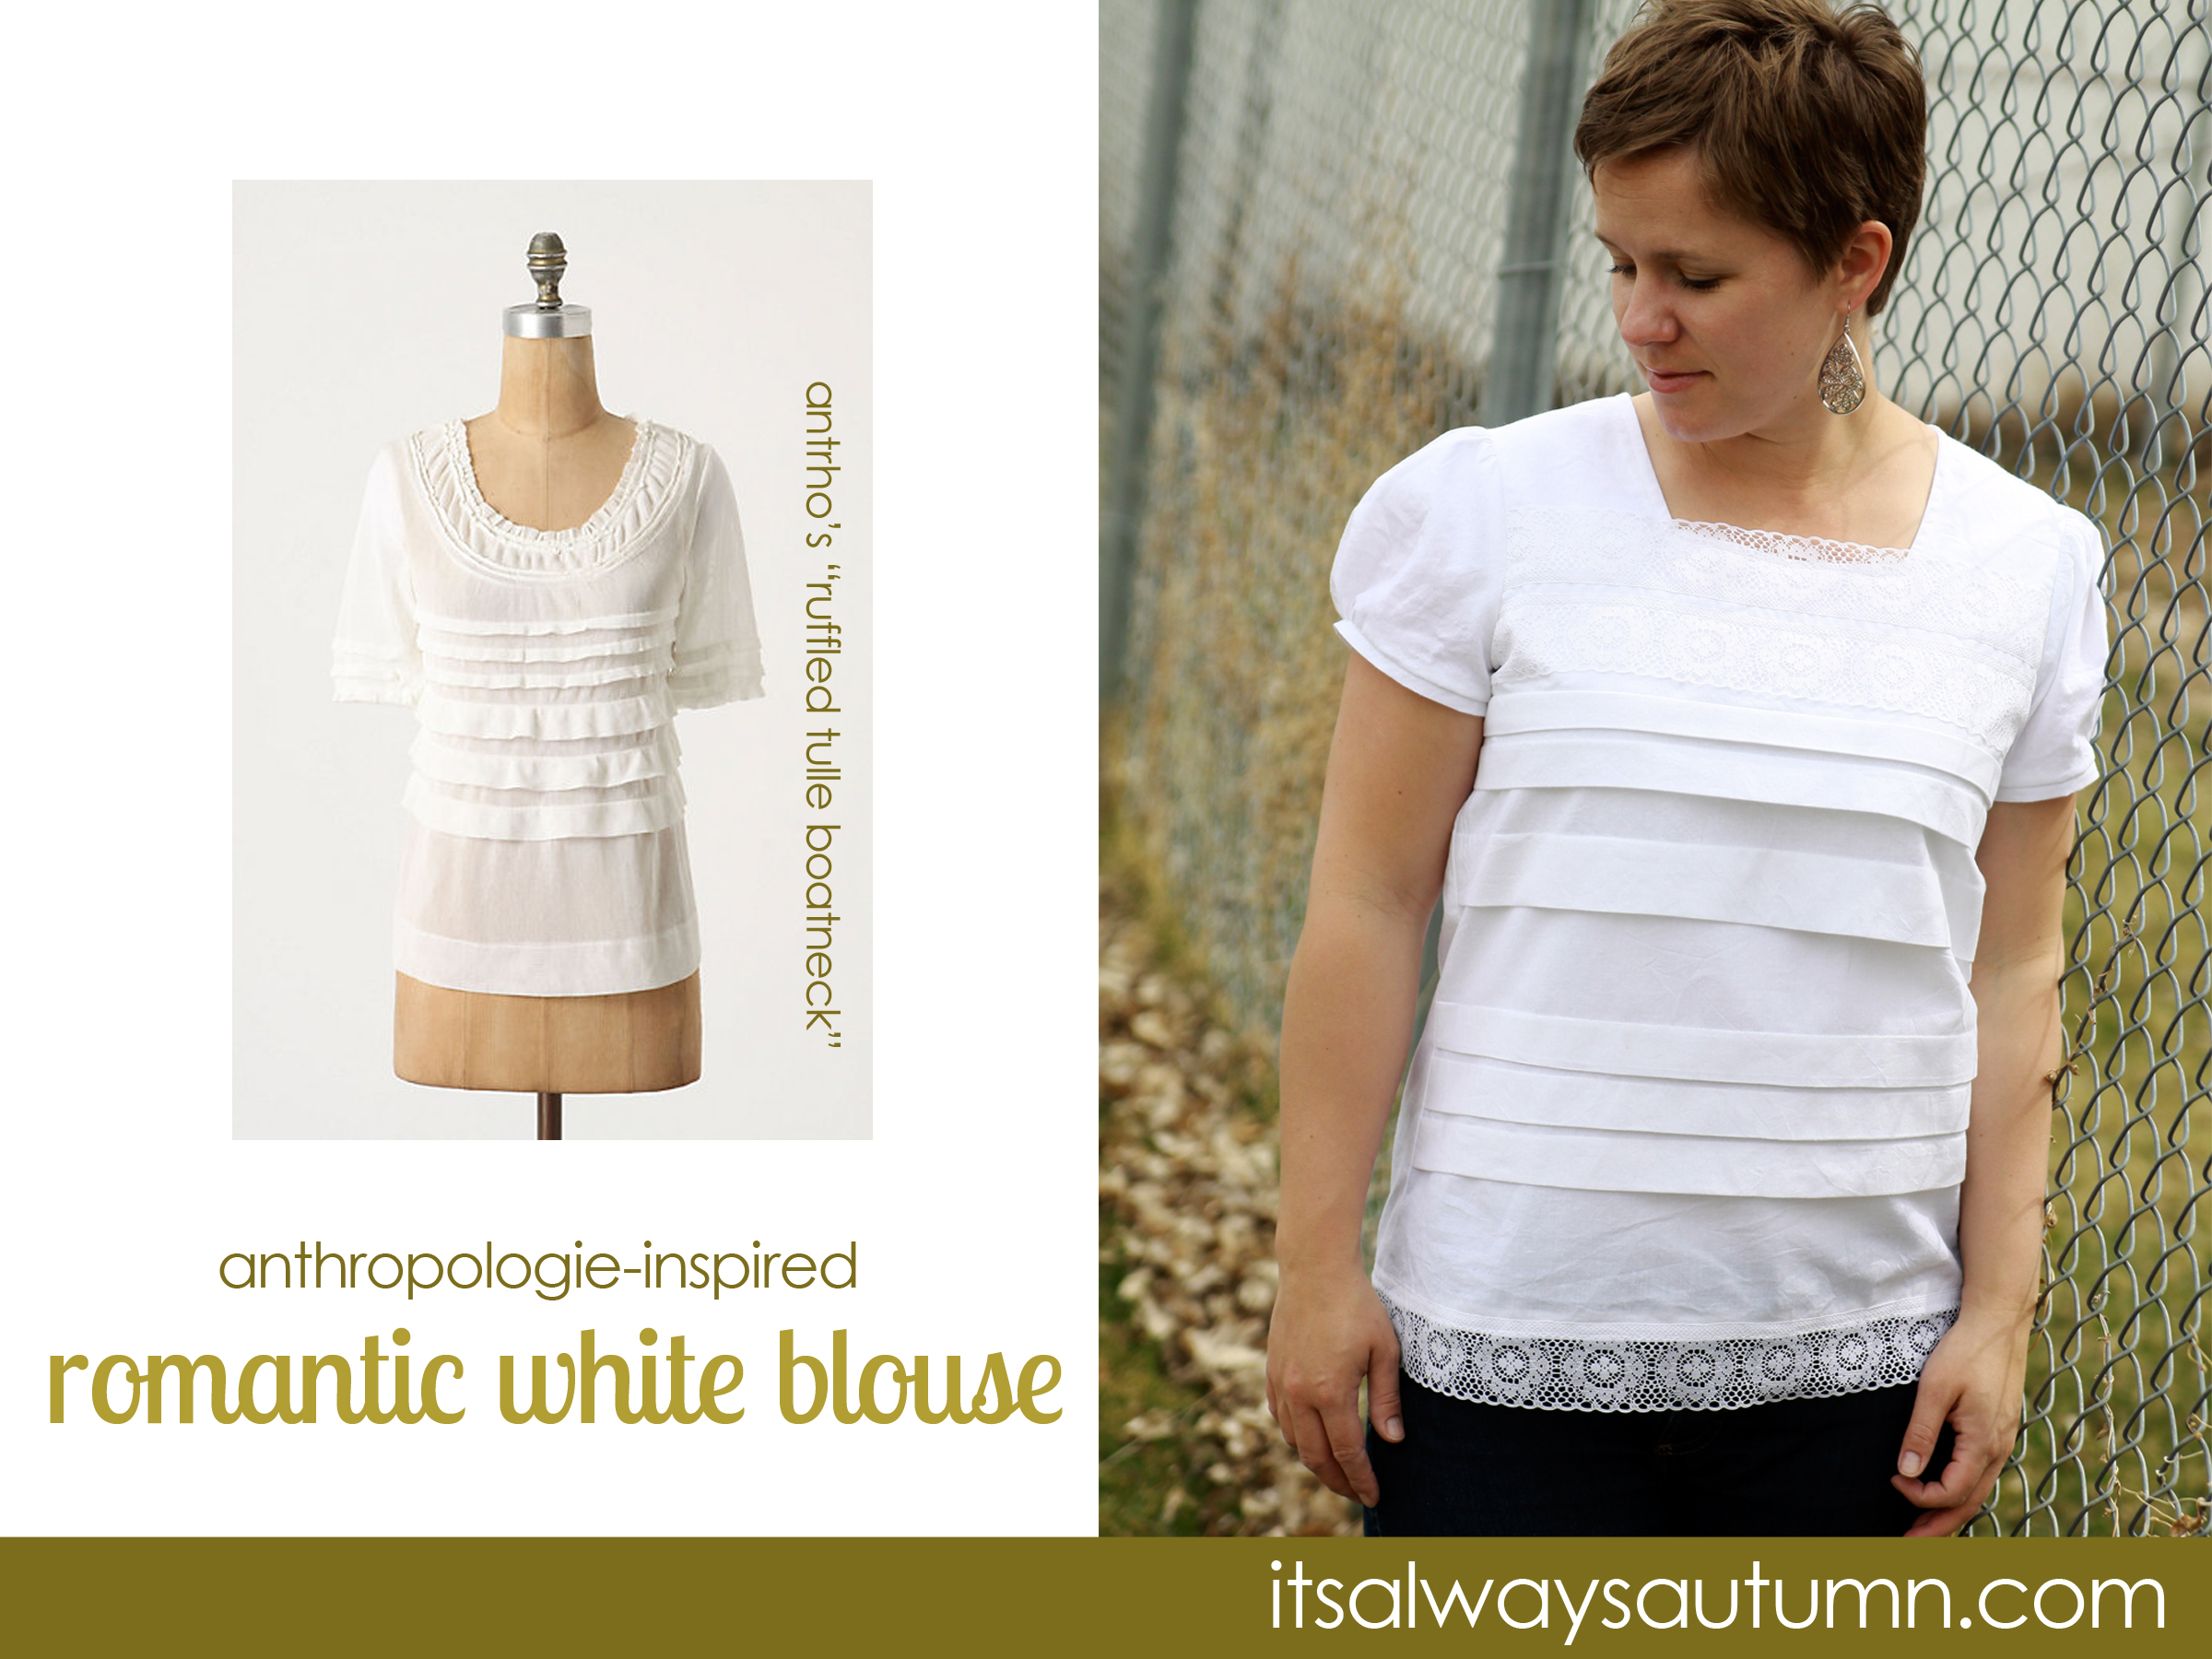 sew: anthro-inspired romantic white blouse